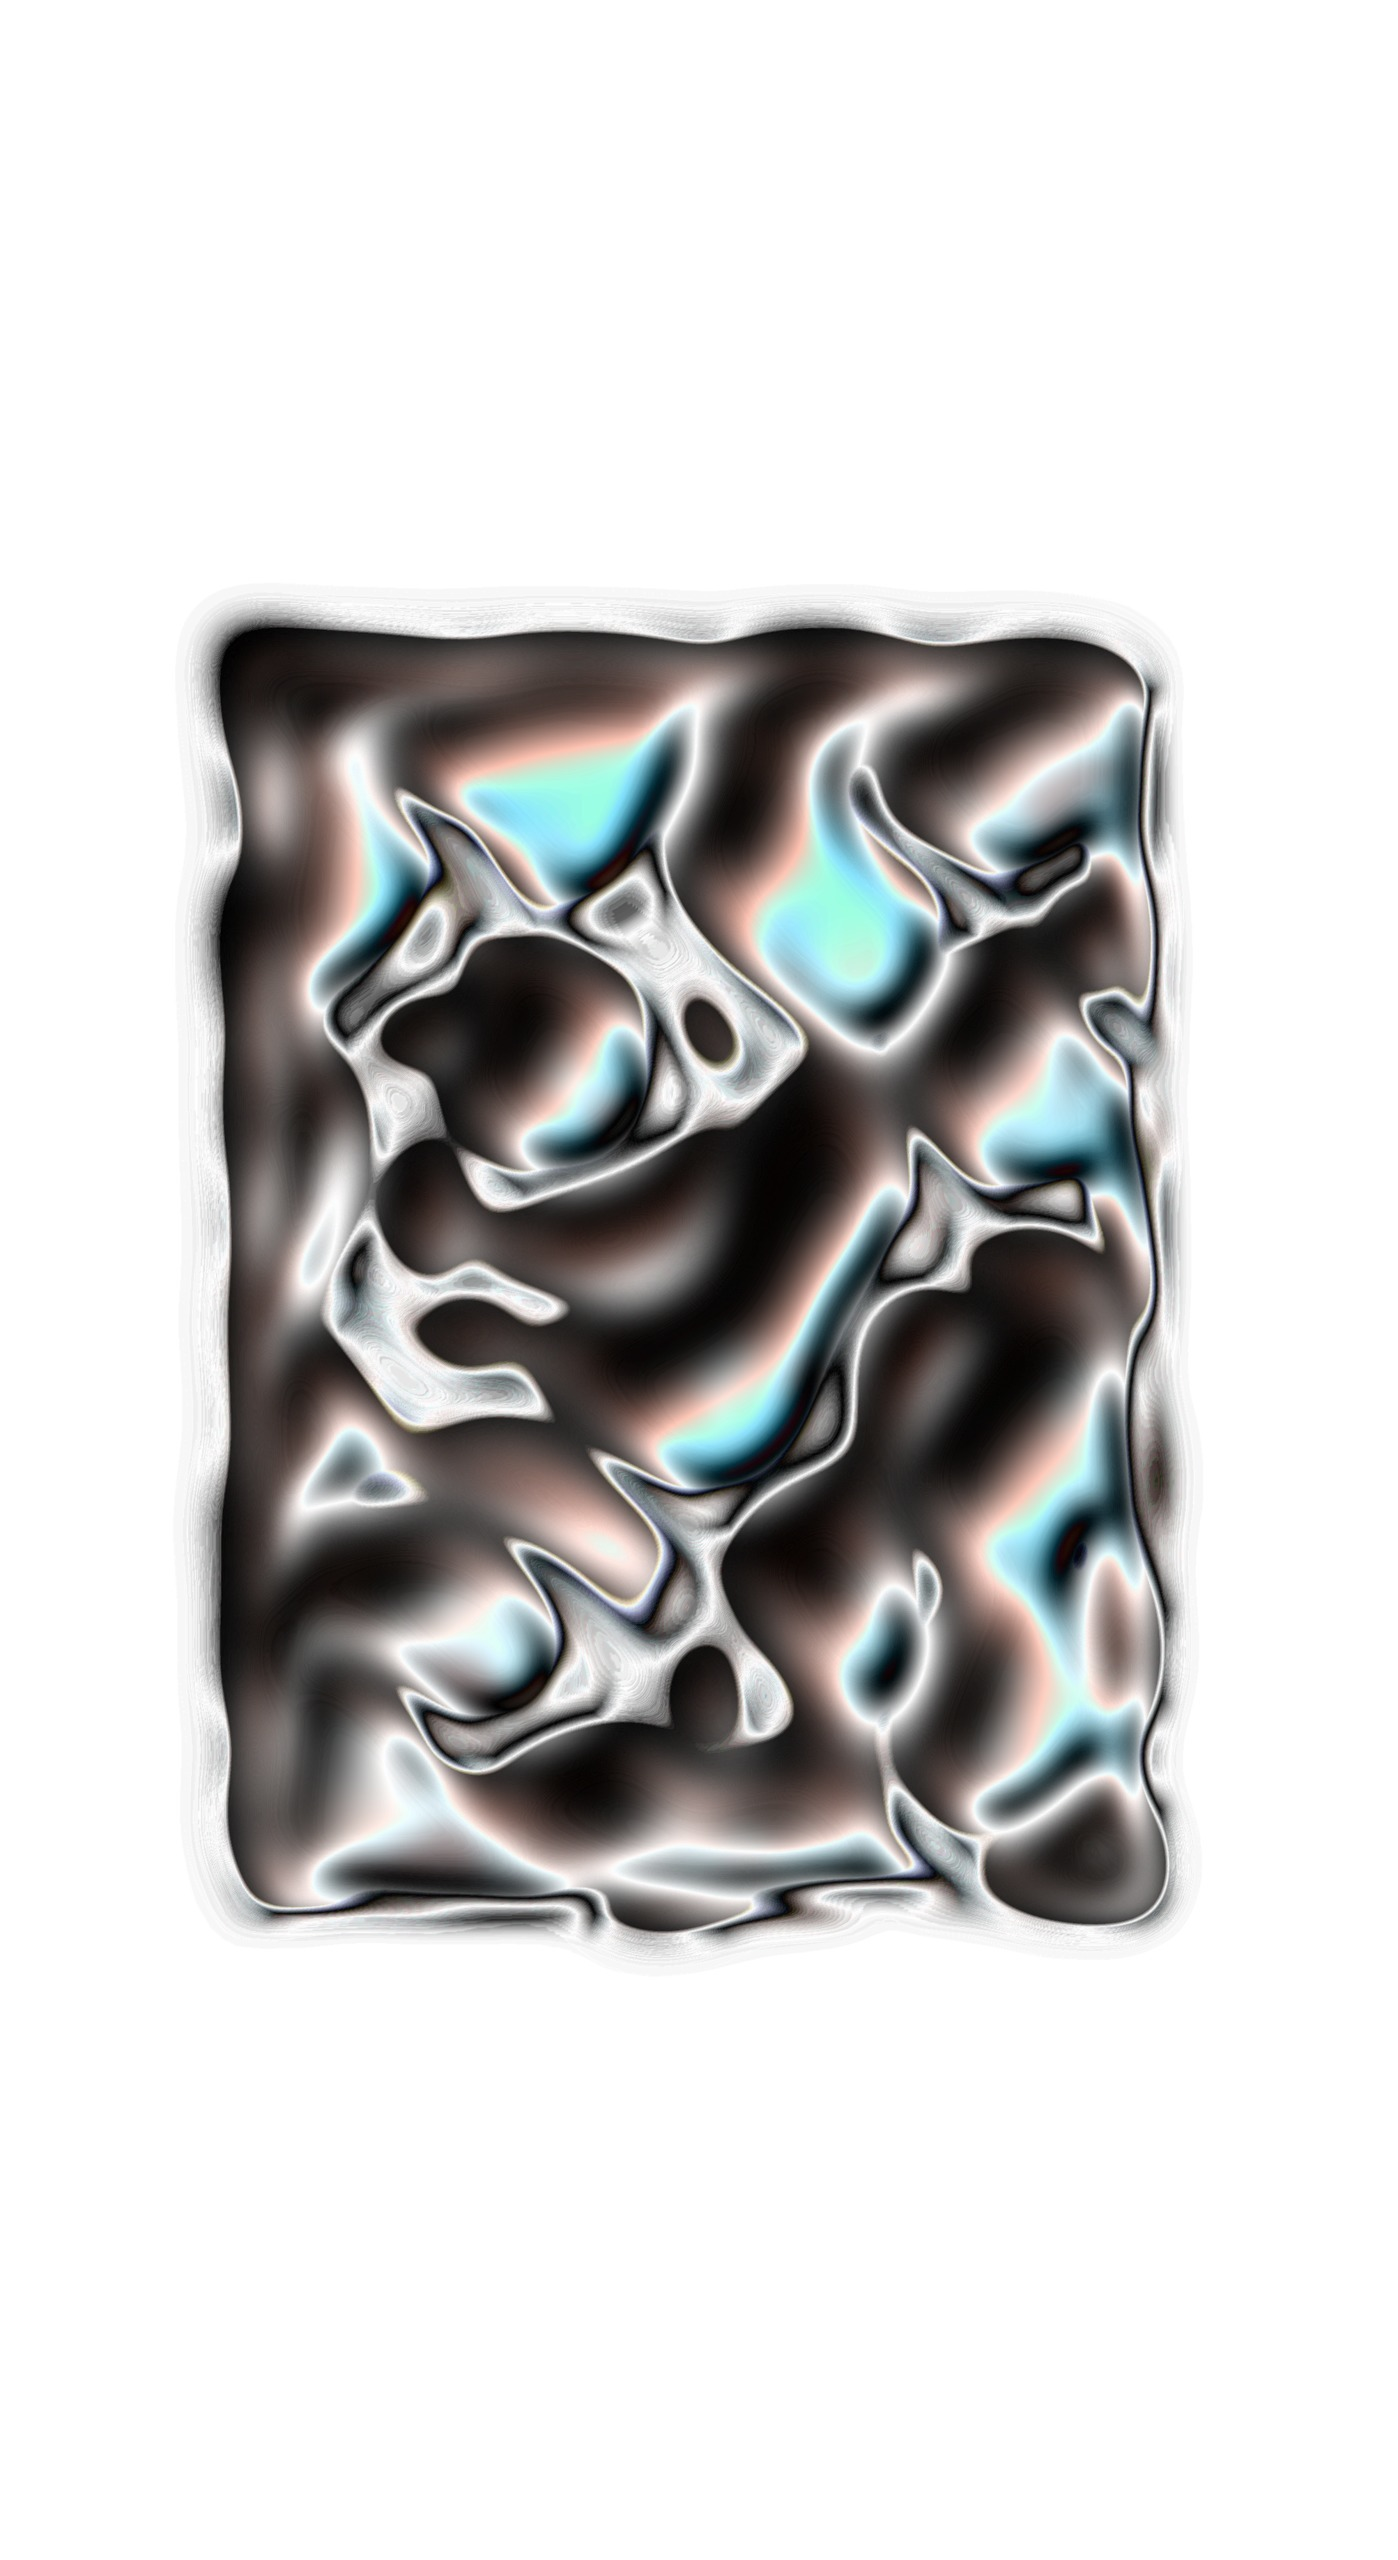 lil inkscape - png, abstract, texture - escapescapes | ello